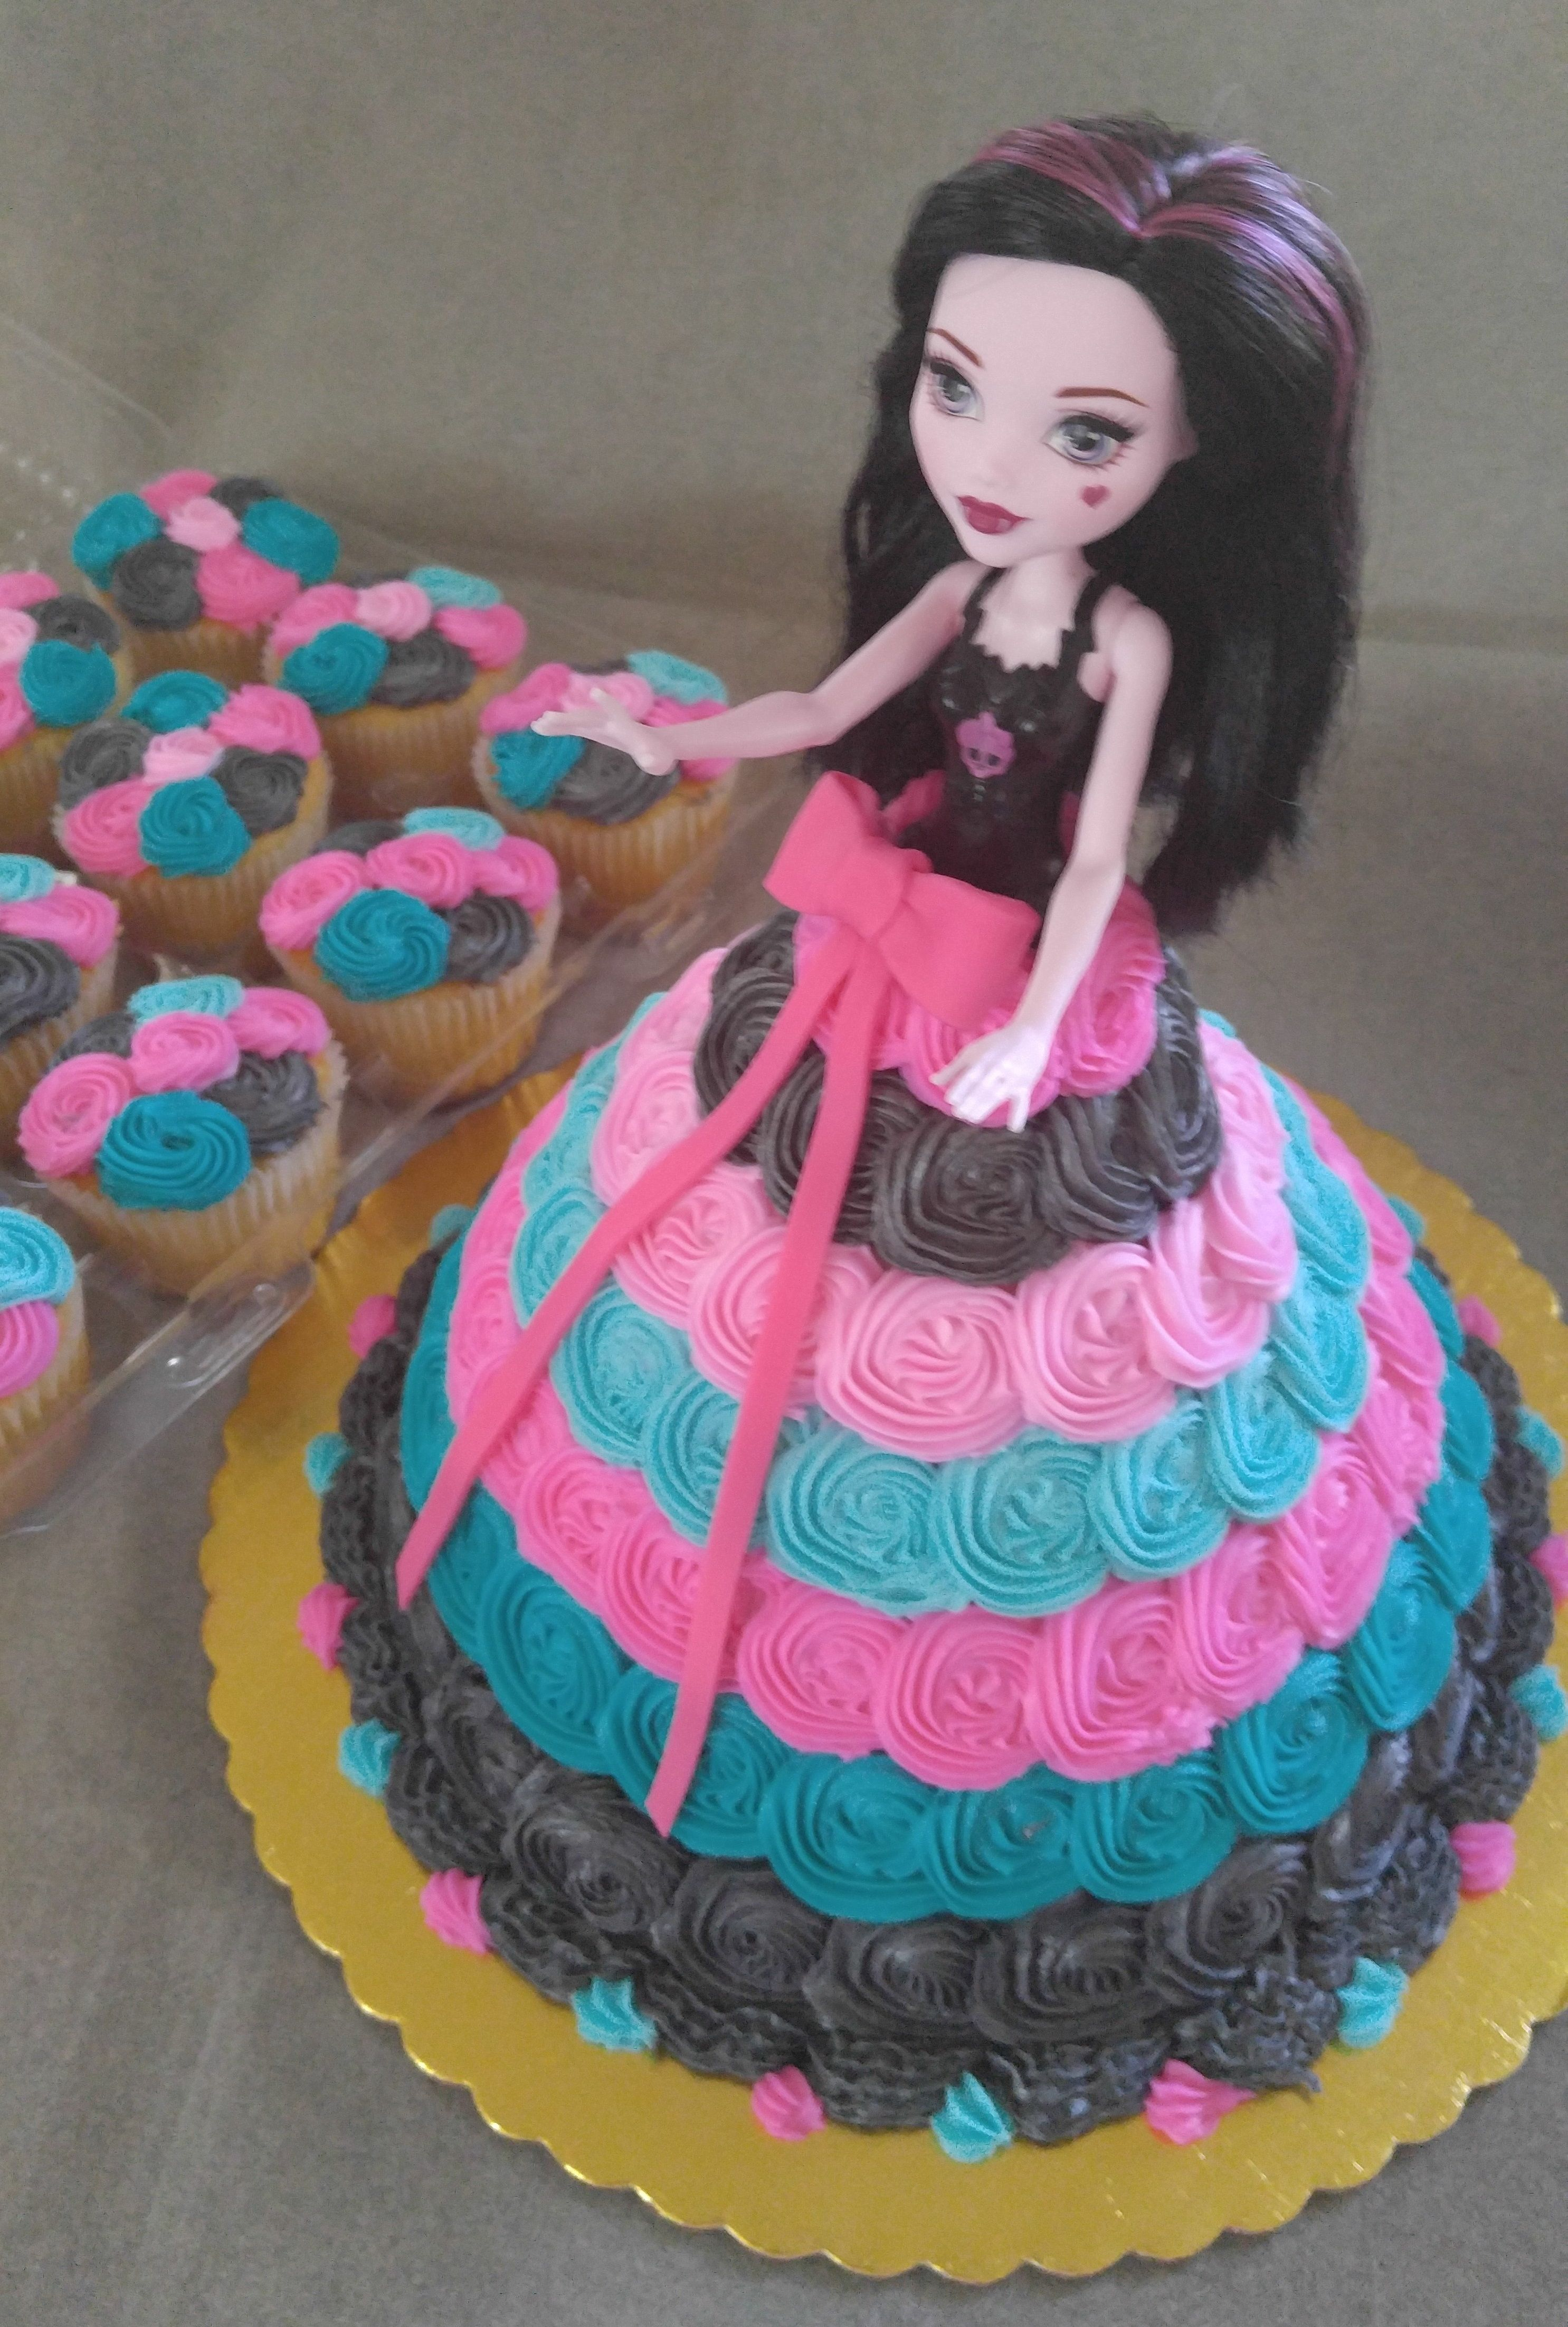 Brilliant Monster High Doll Cake With Coordinating Cupcakes Personalised Birthday Cards Sponlily Jamesorg